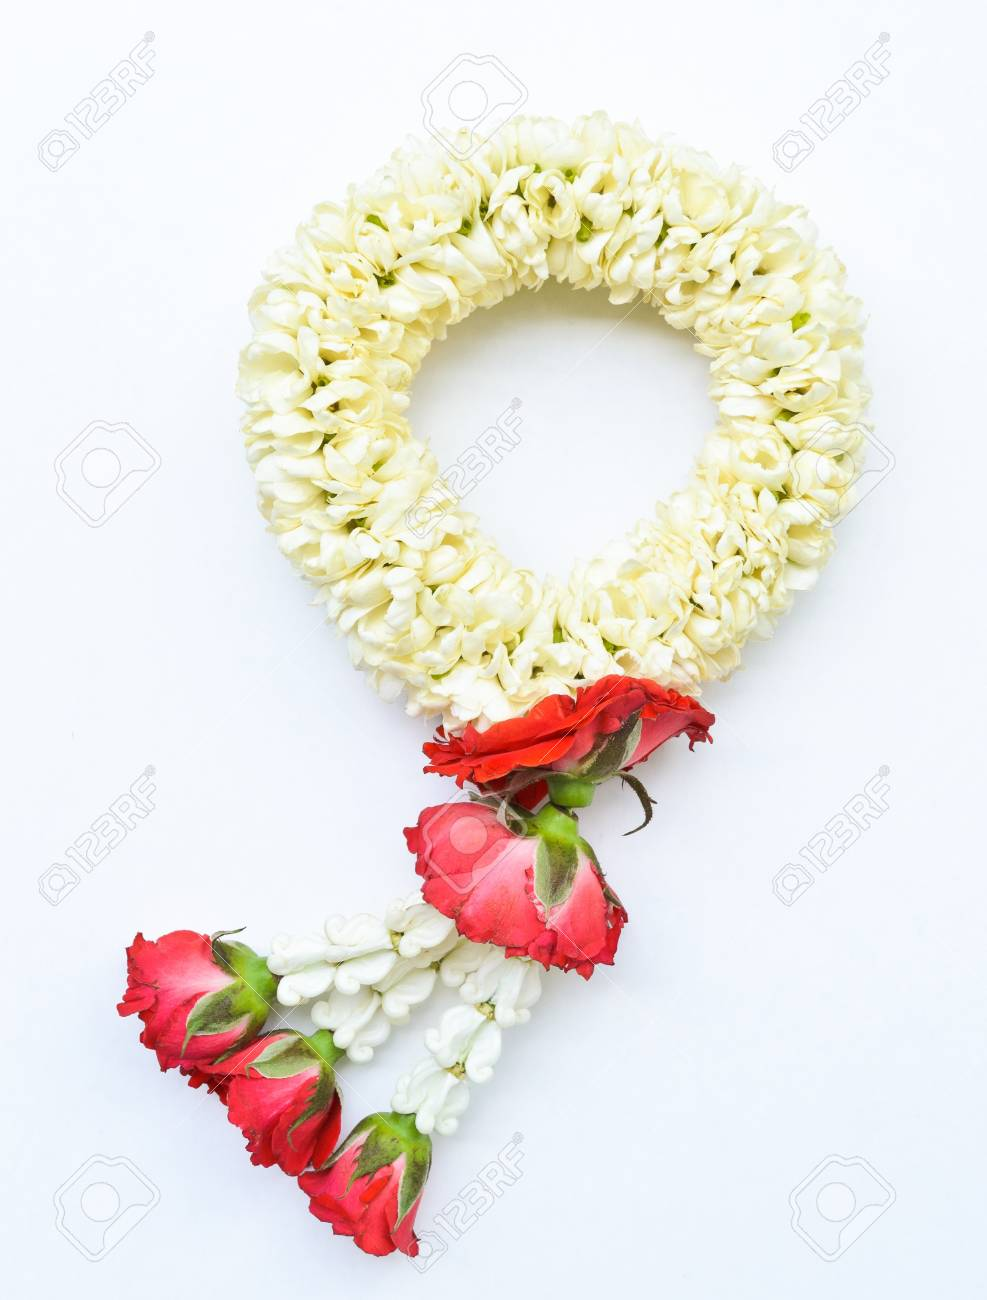 traditional thai style garland on white background Stock Photo - 13328807